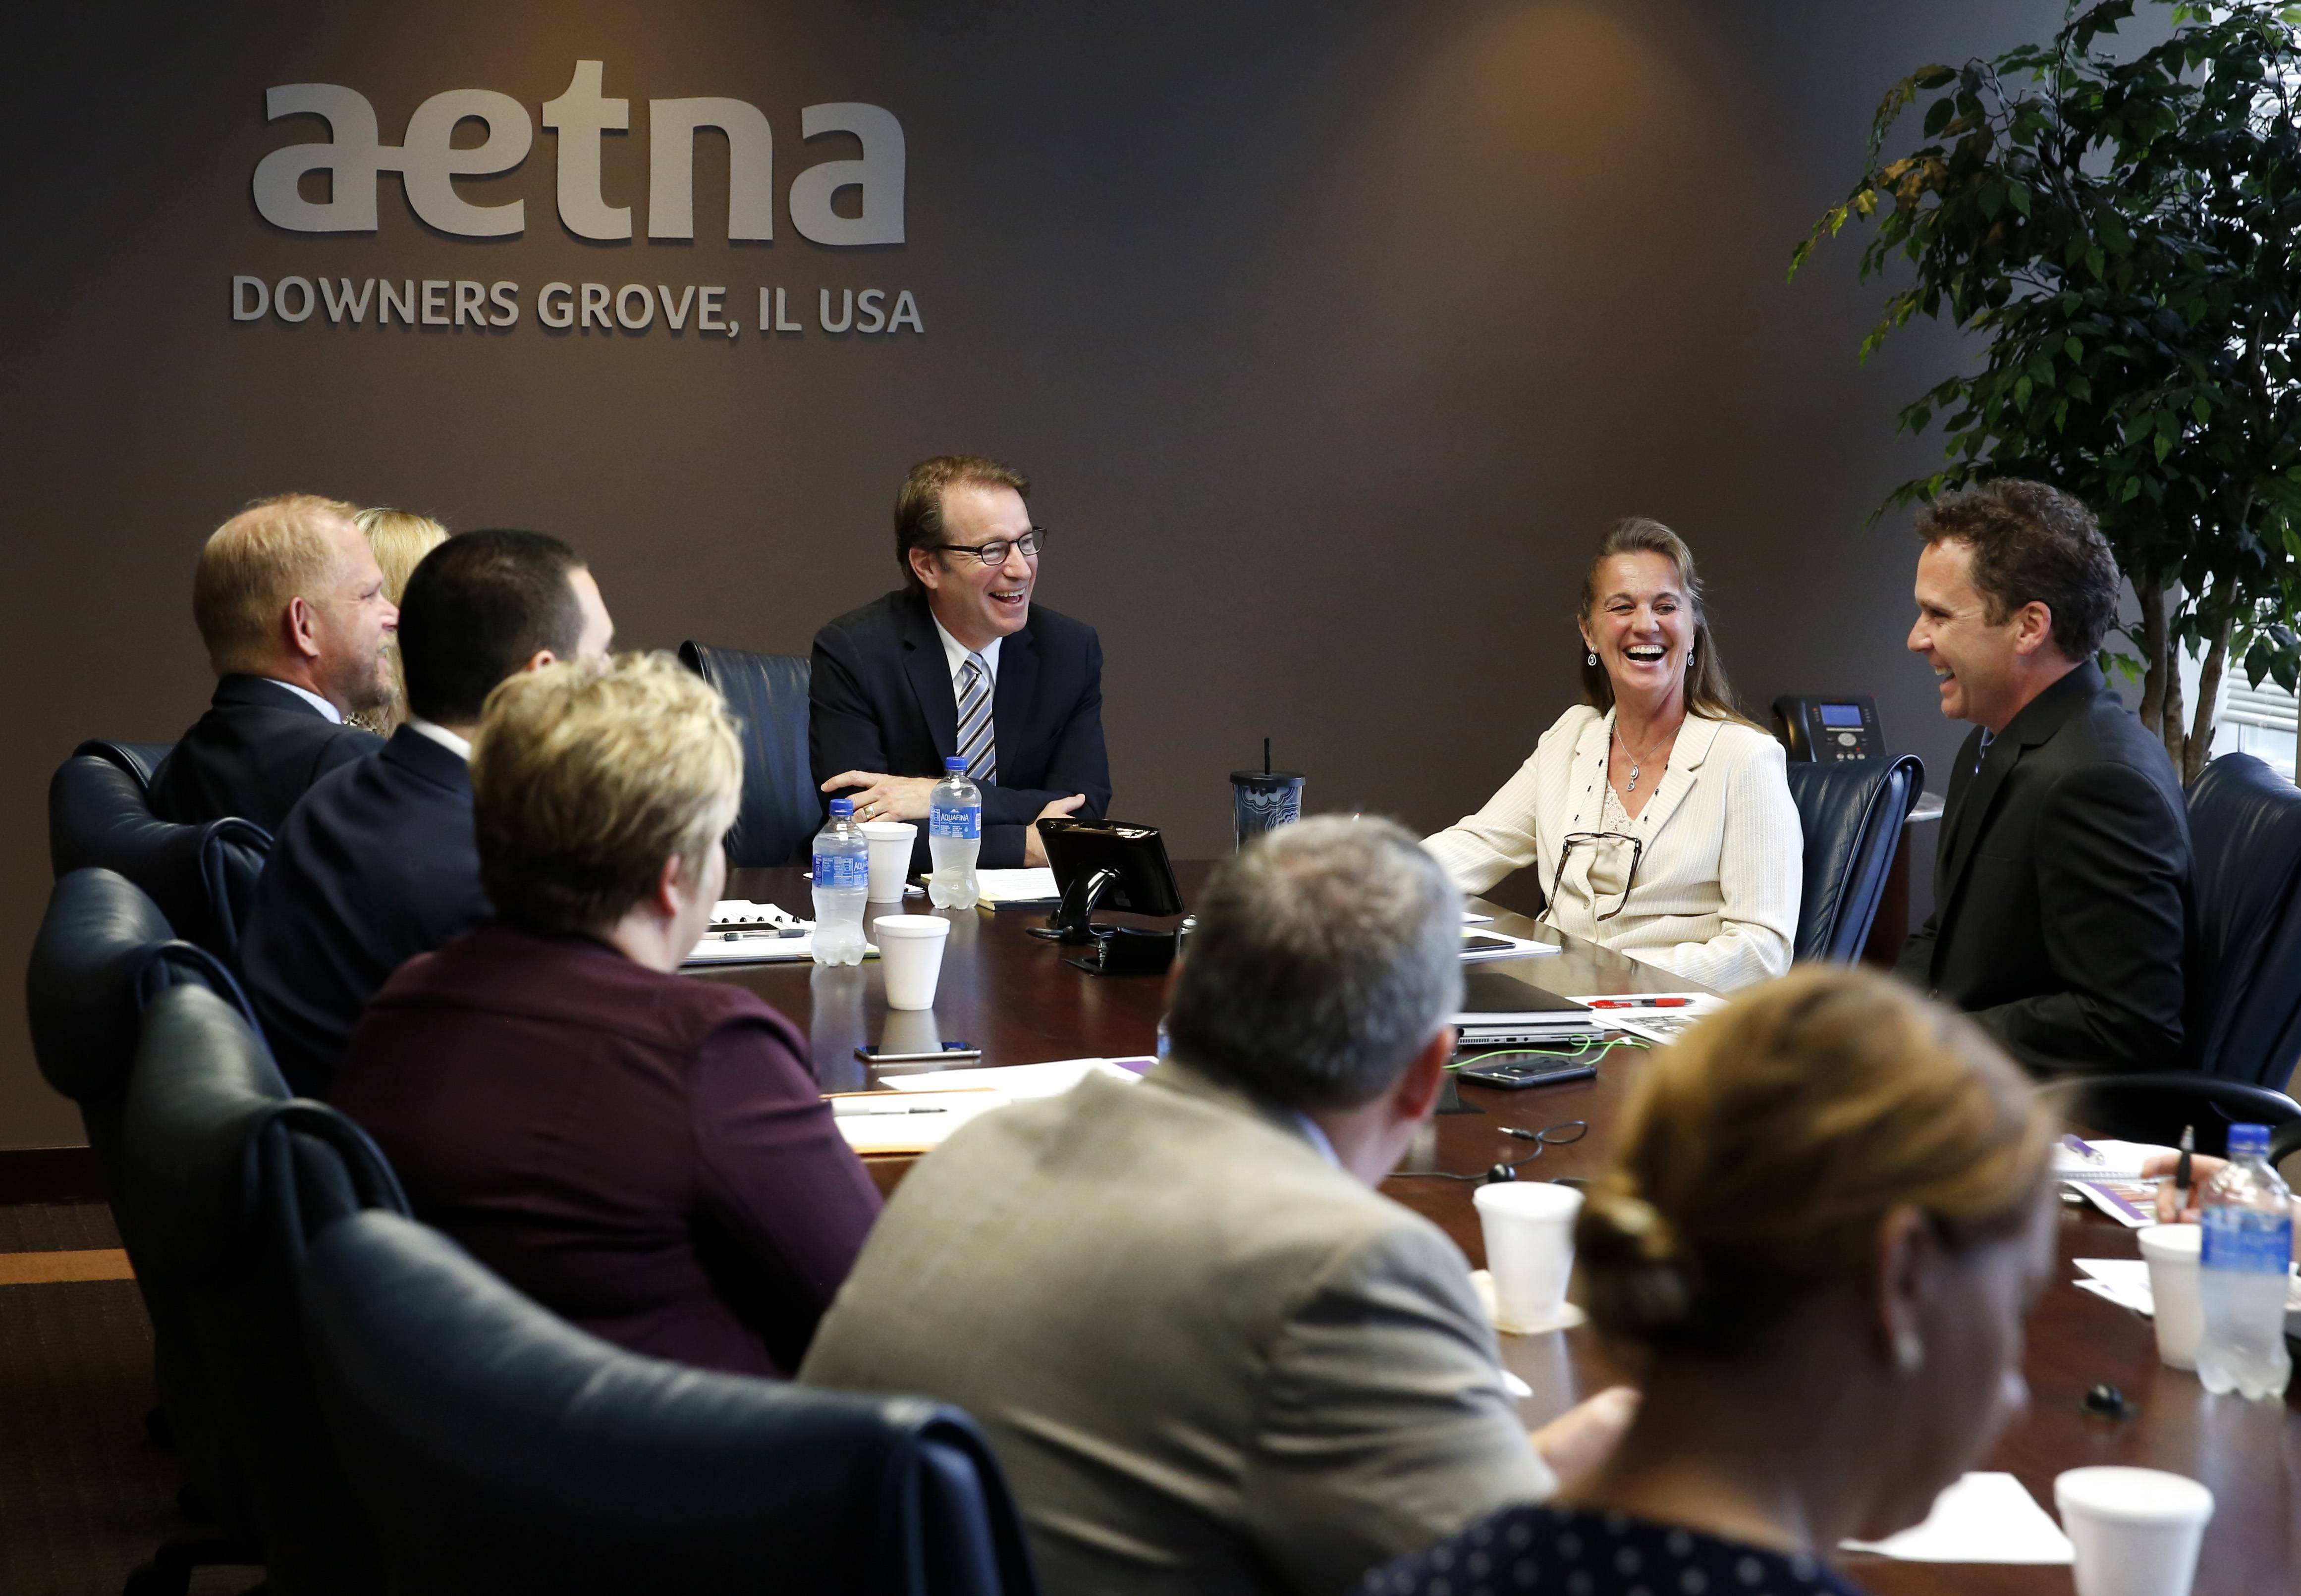 U.S. Rep. Peter Roskam of Wheaton, center, listens to Aetna health care executives discuss their response to the opioid crisis as he visits with them on the campaign trail in Downers Grove.